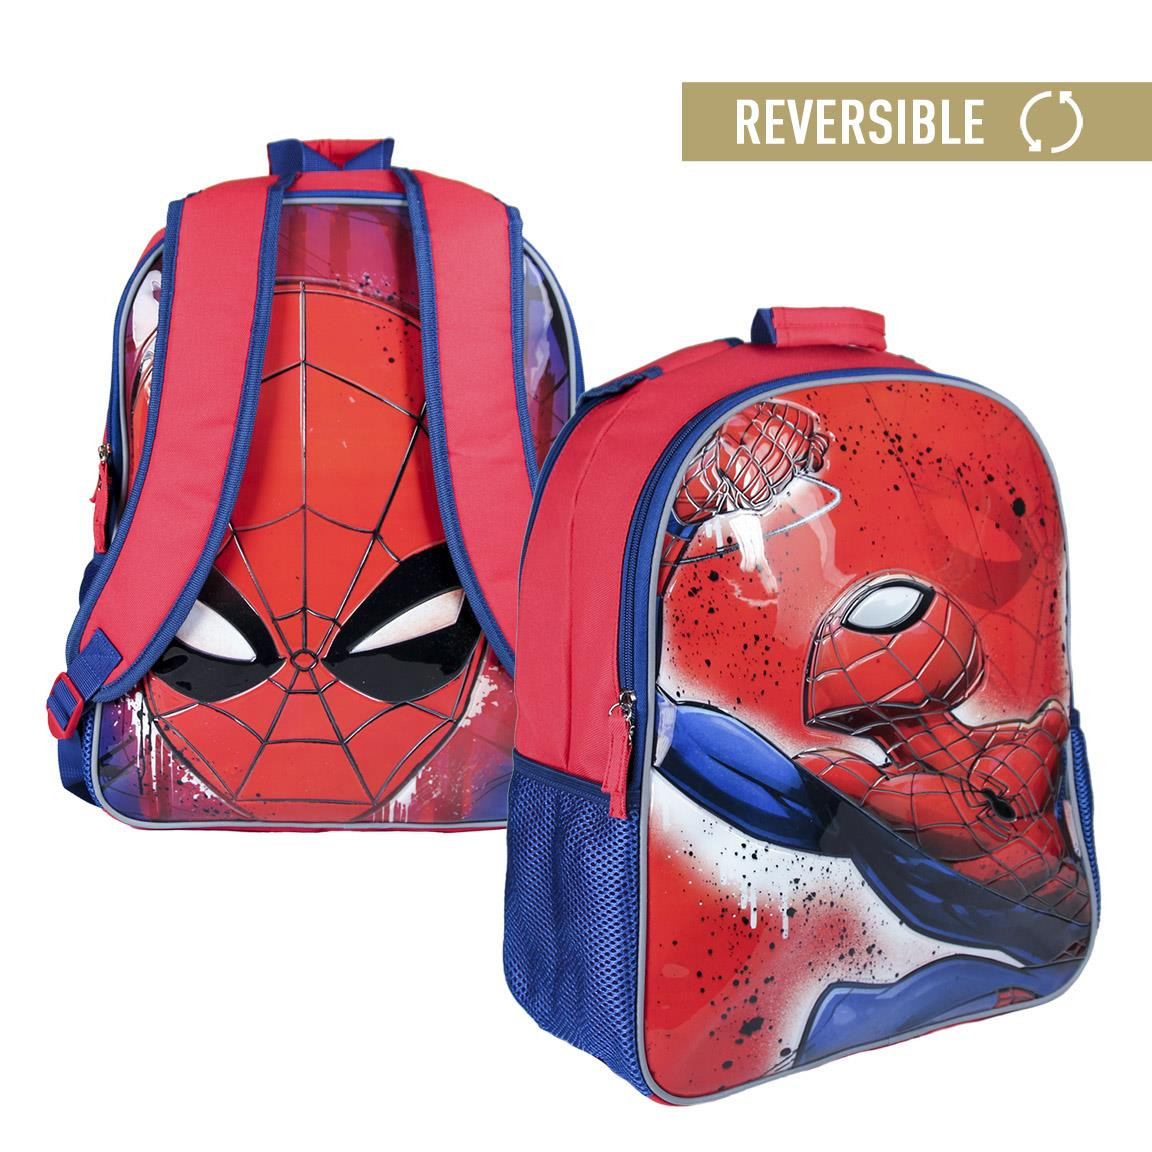 Children's backpack Spiderman reversible with two illustrations - Home and More